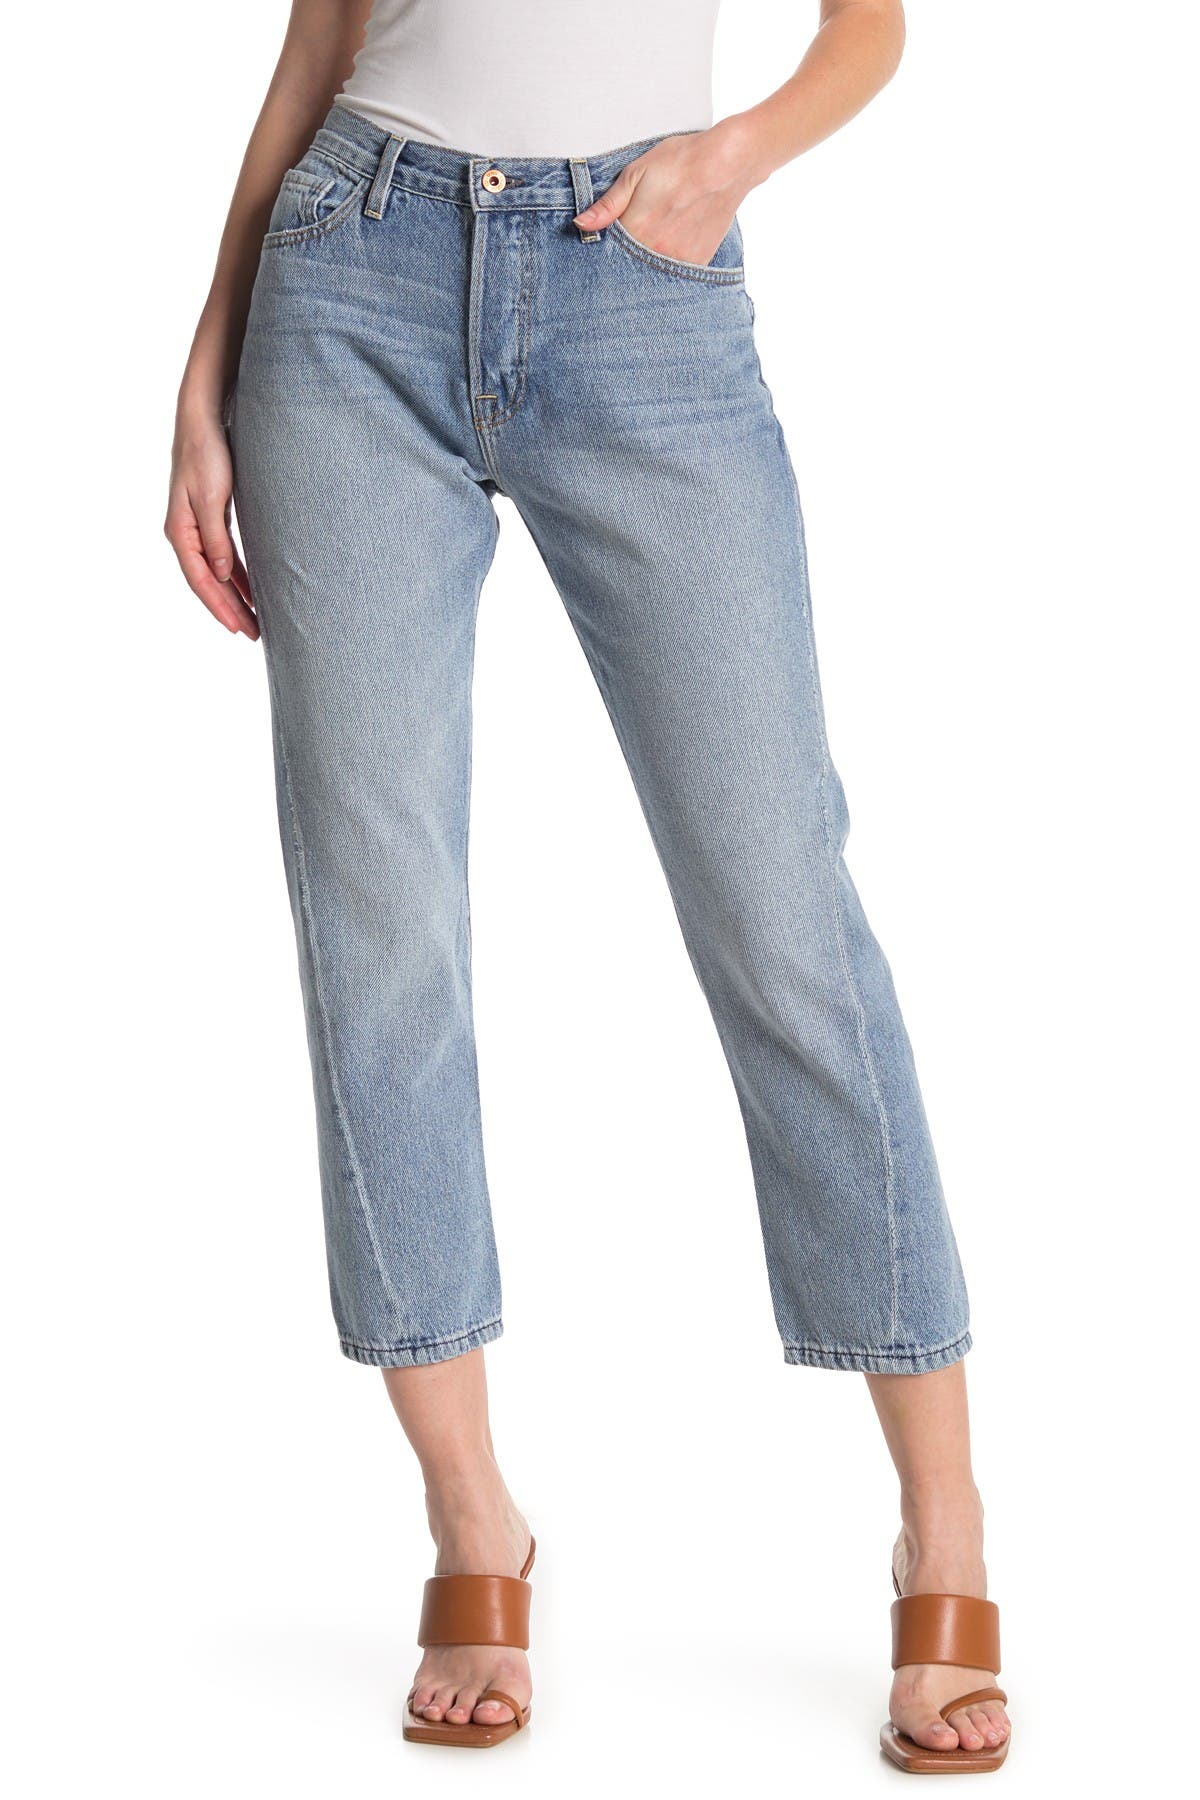 Image of NSF CLOTHING Torque Seam Jeans